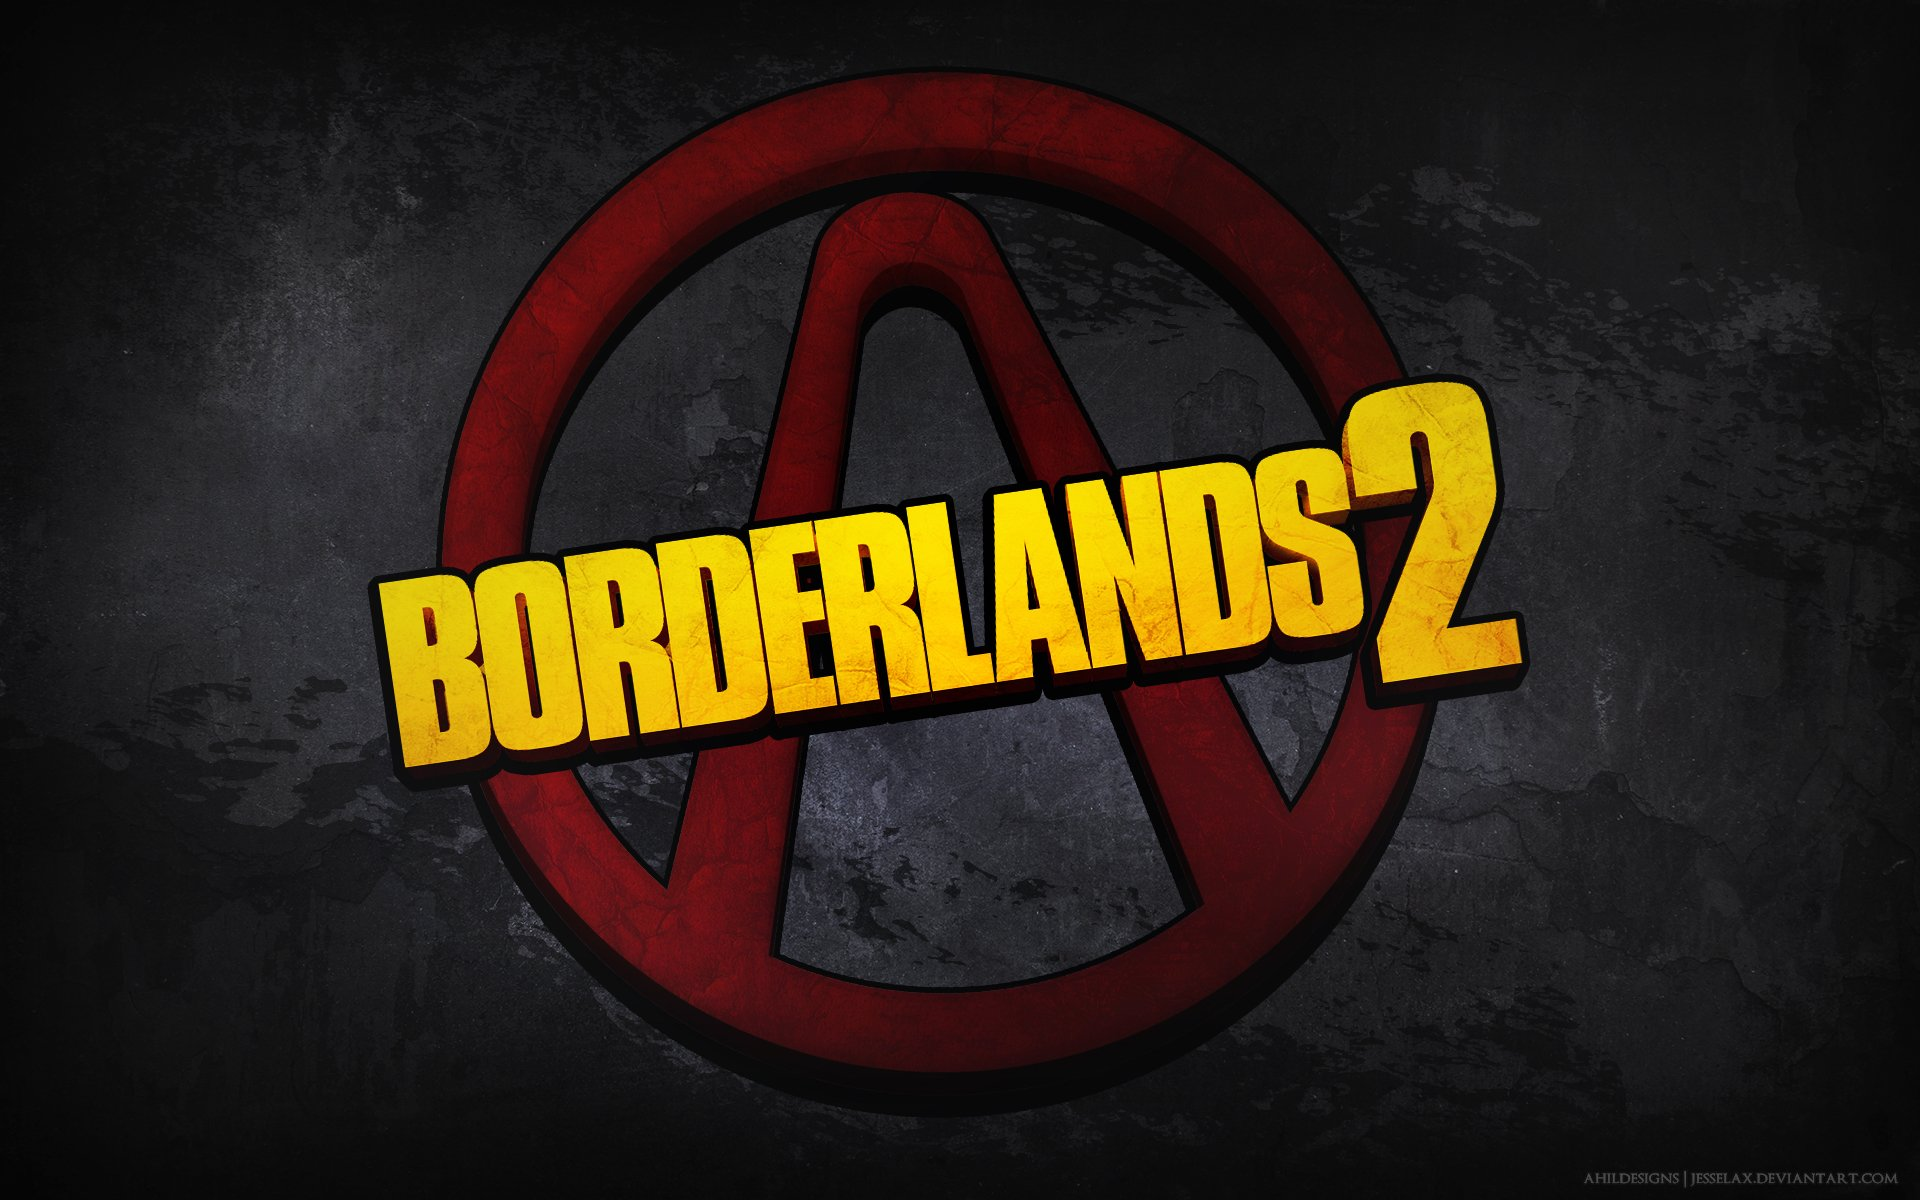 Borderlands 2 Wallpaper Hd Borderlands 2 Fond D 233 Cran Hd Arri 232 Re Plan 1920x1200